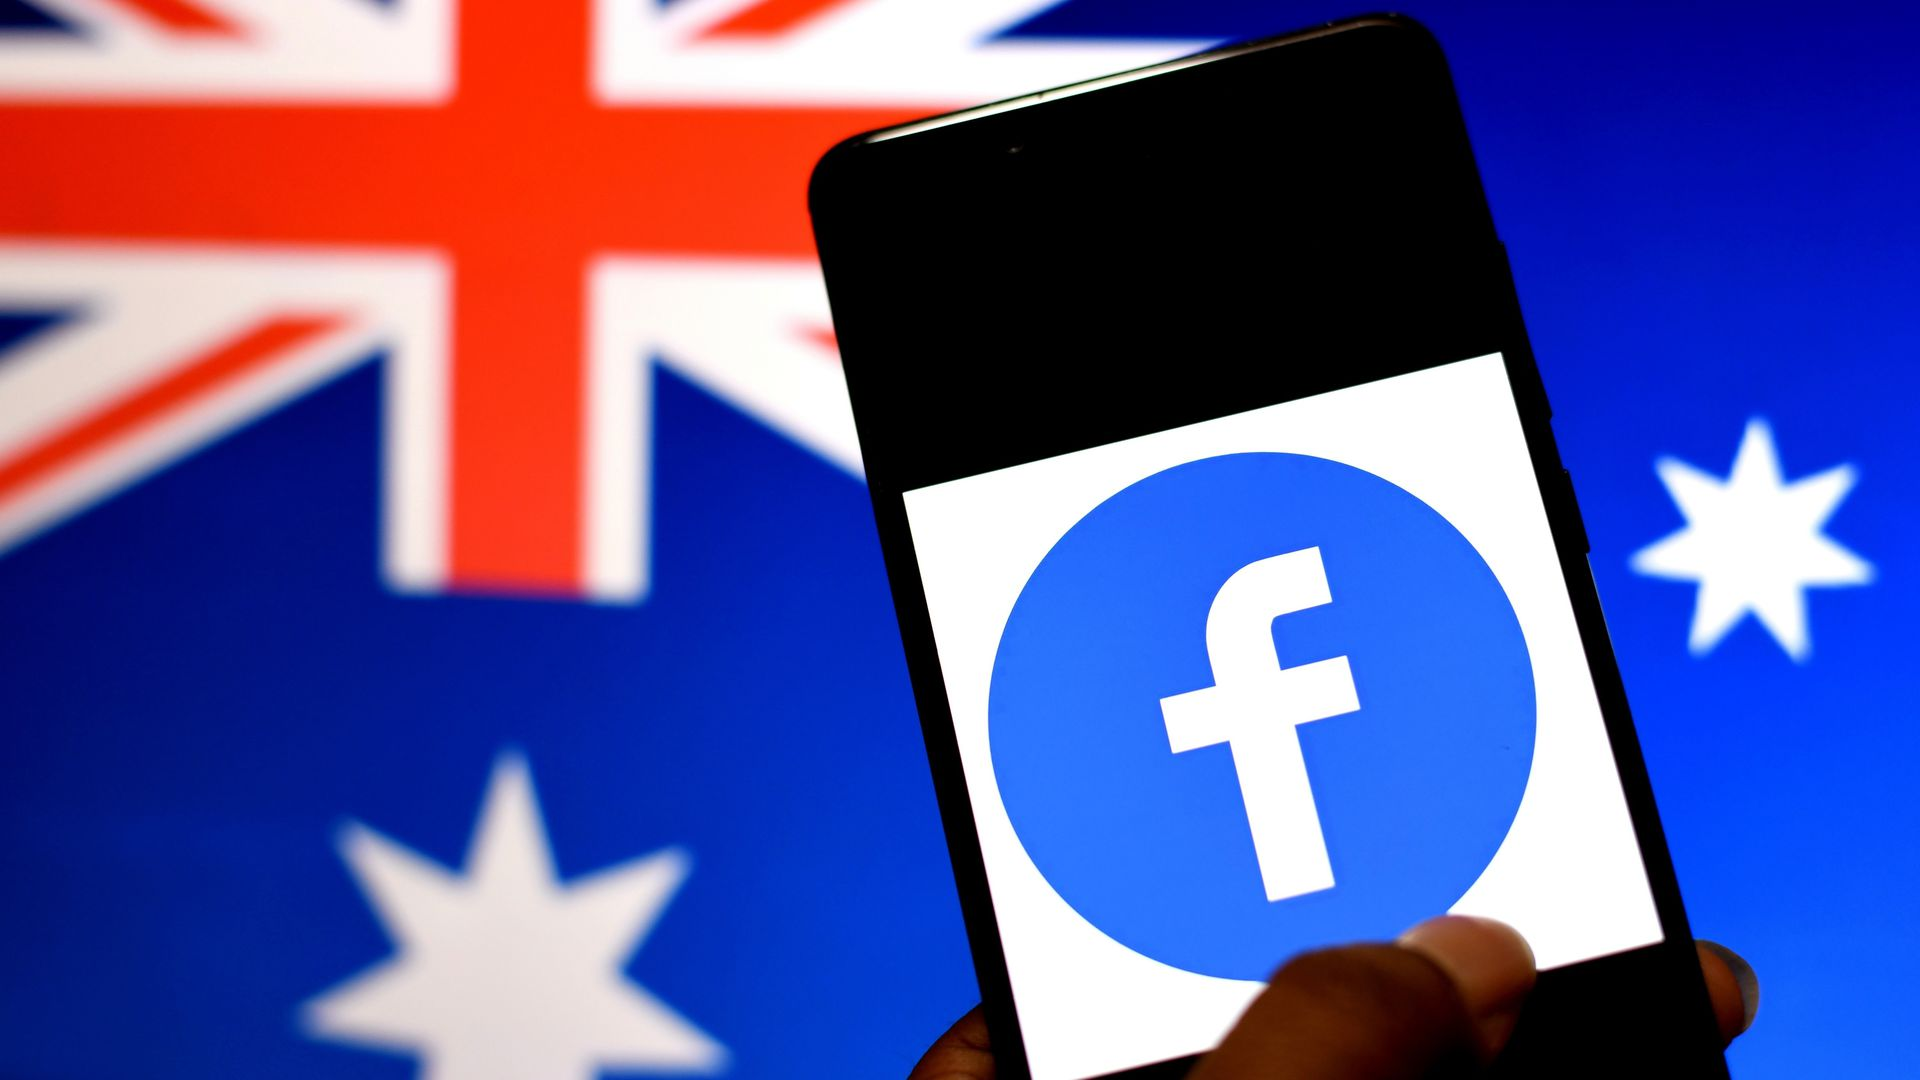 Facebook strikes last-minute deal with Australia around news content - Axios